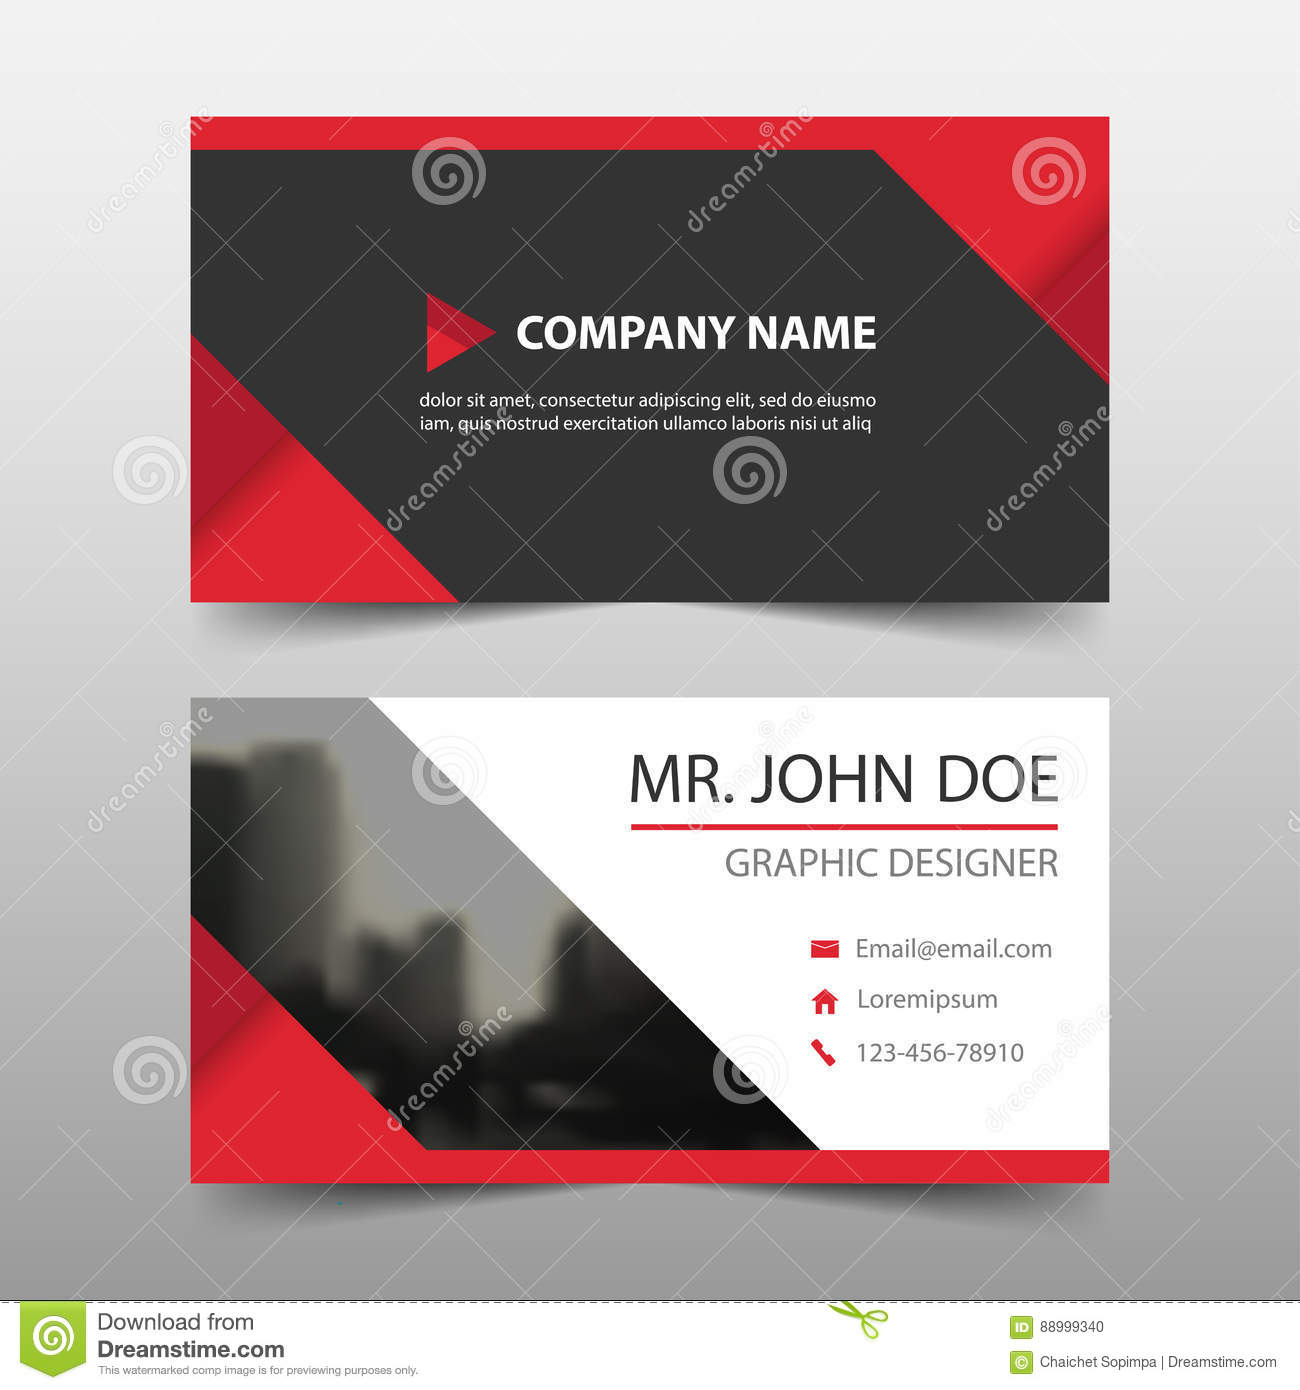 Red triangle corporate business card name card template horizontal download red triangle corporate business card name card template horizontal simple clean layout design fbccfo Choice Image